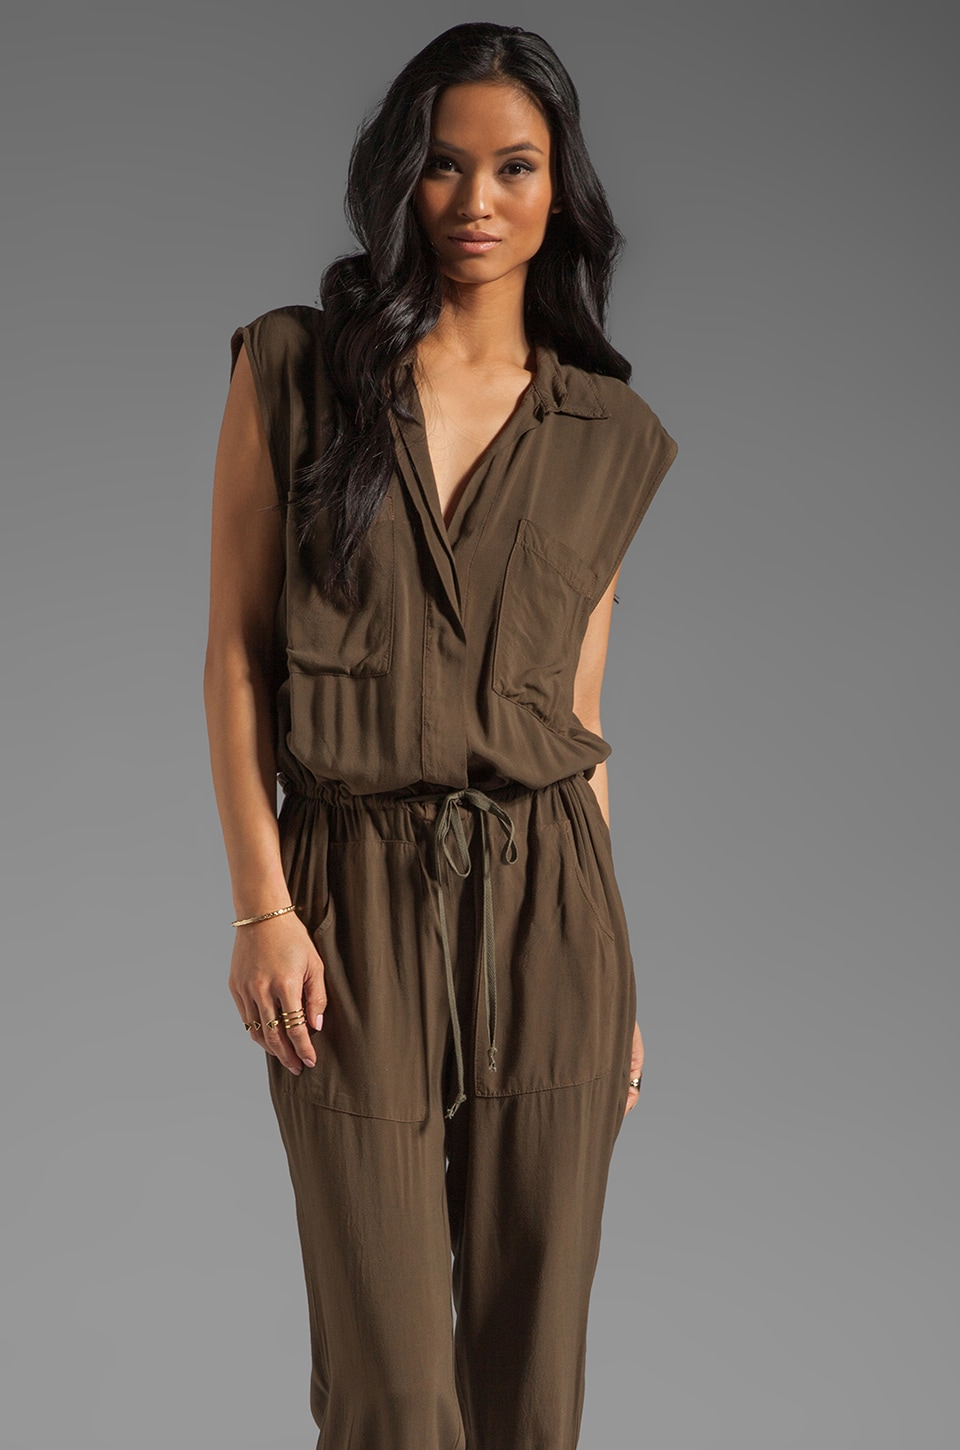 Enza Costa Challis Jumpsuit in Olive Drab